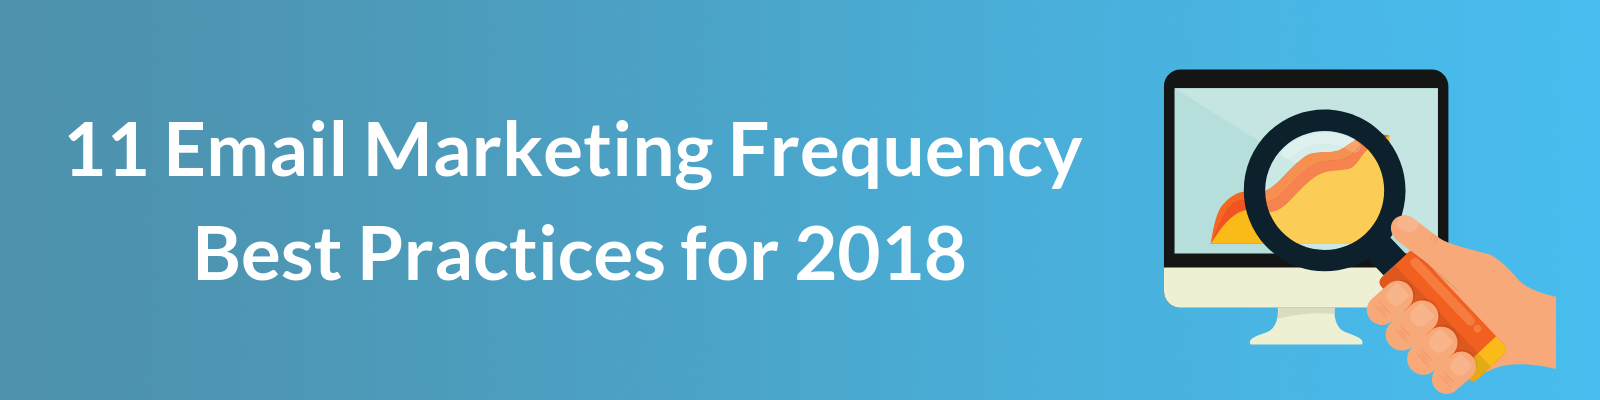 11 Email Marketing Frequency Best Practices for 2018